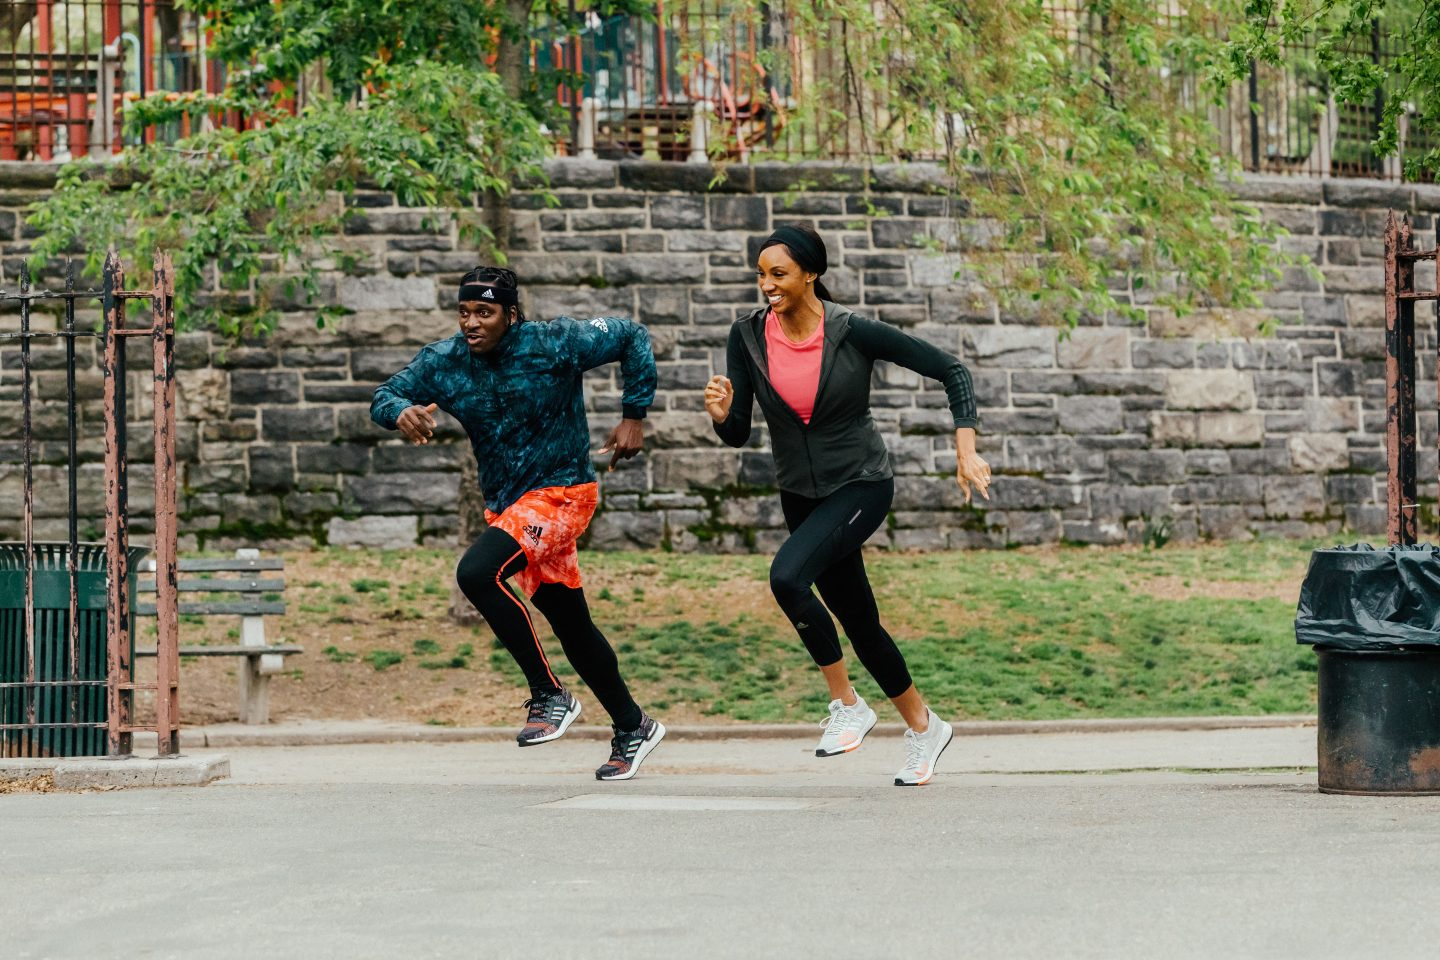 Maria Taylor and Pusha T sprint side by side in a park.